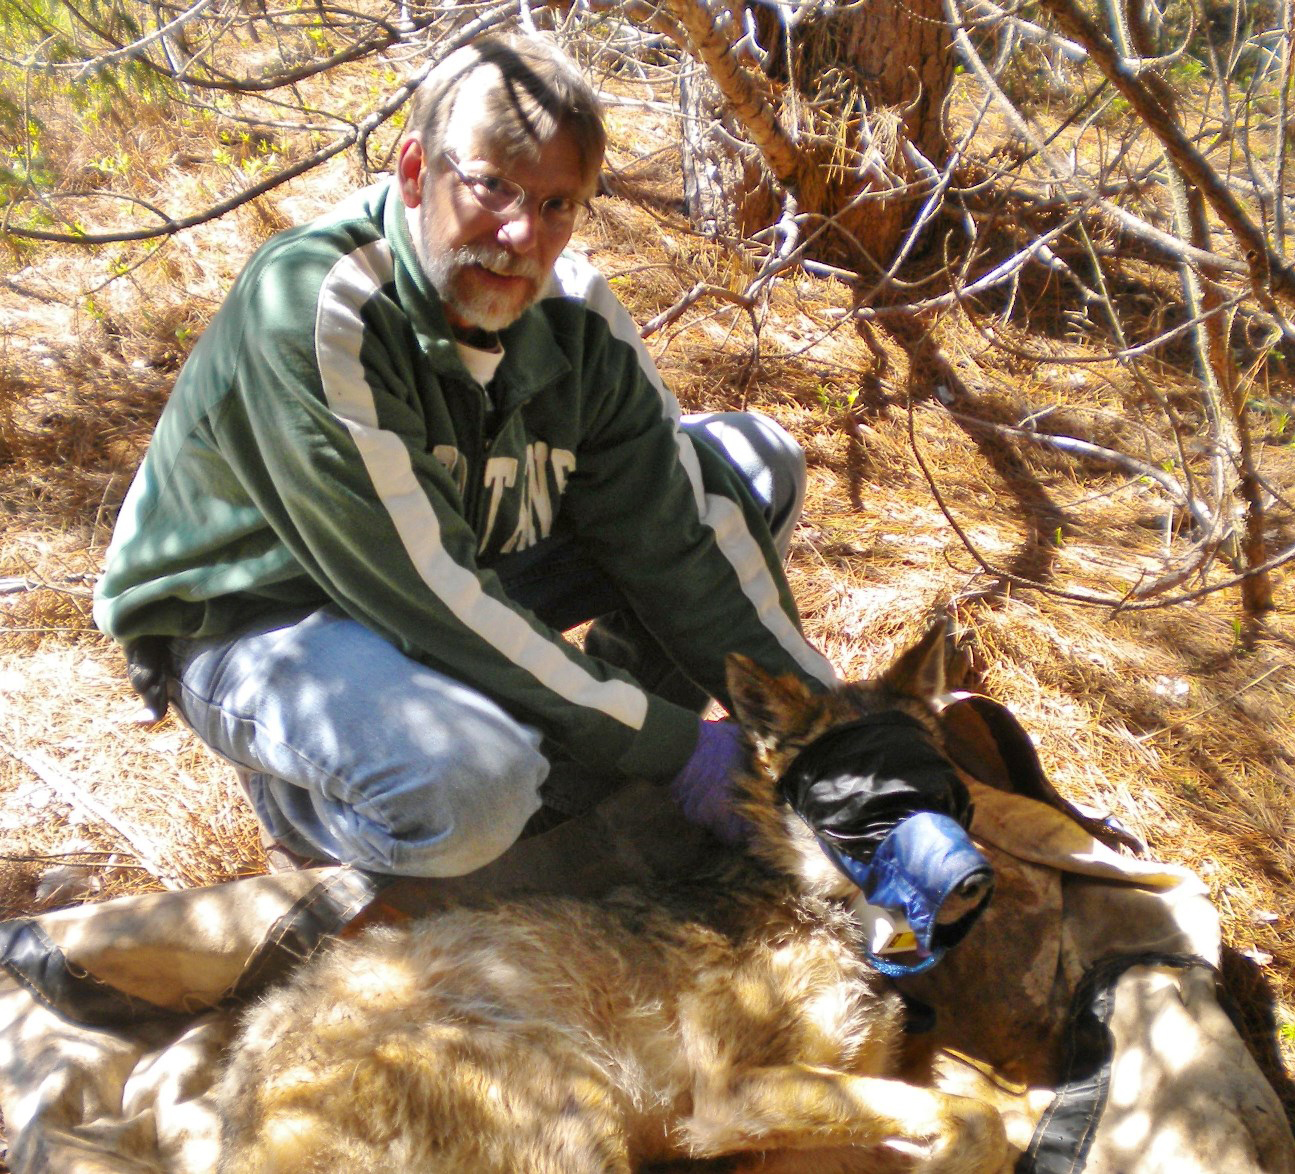 Dean Beyer, a Michigan Department of Natural Resources wildlife research biologist, will discuss Upper Peninsula moose in Ishpeming Oct. 19.